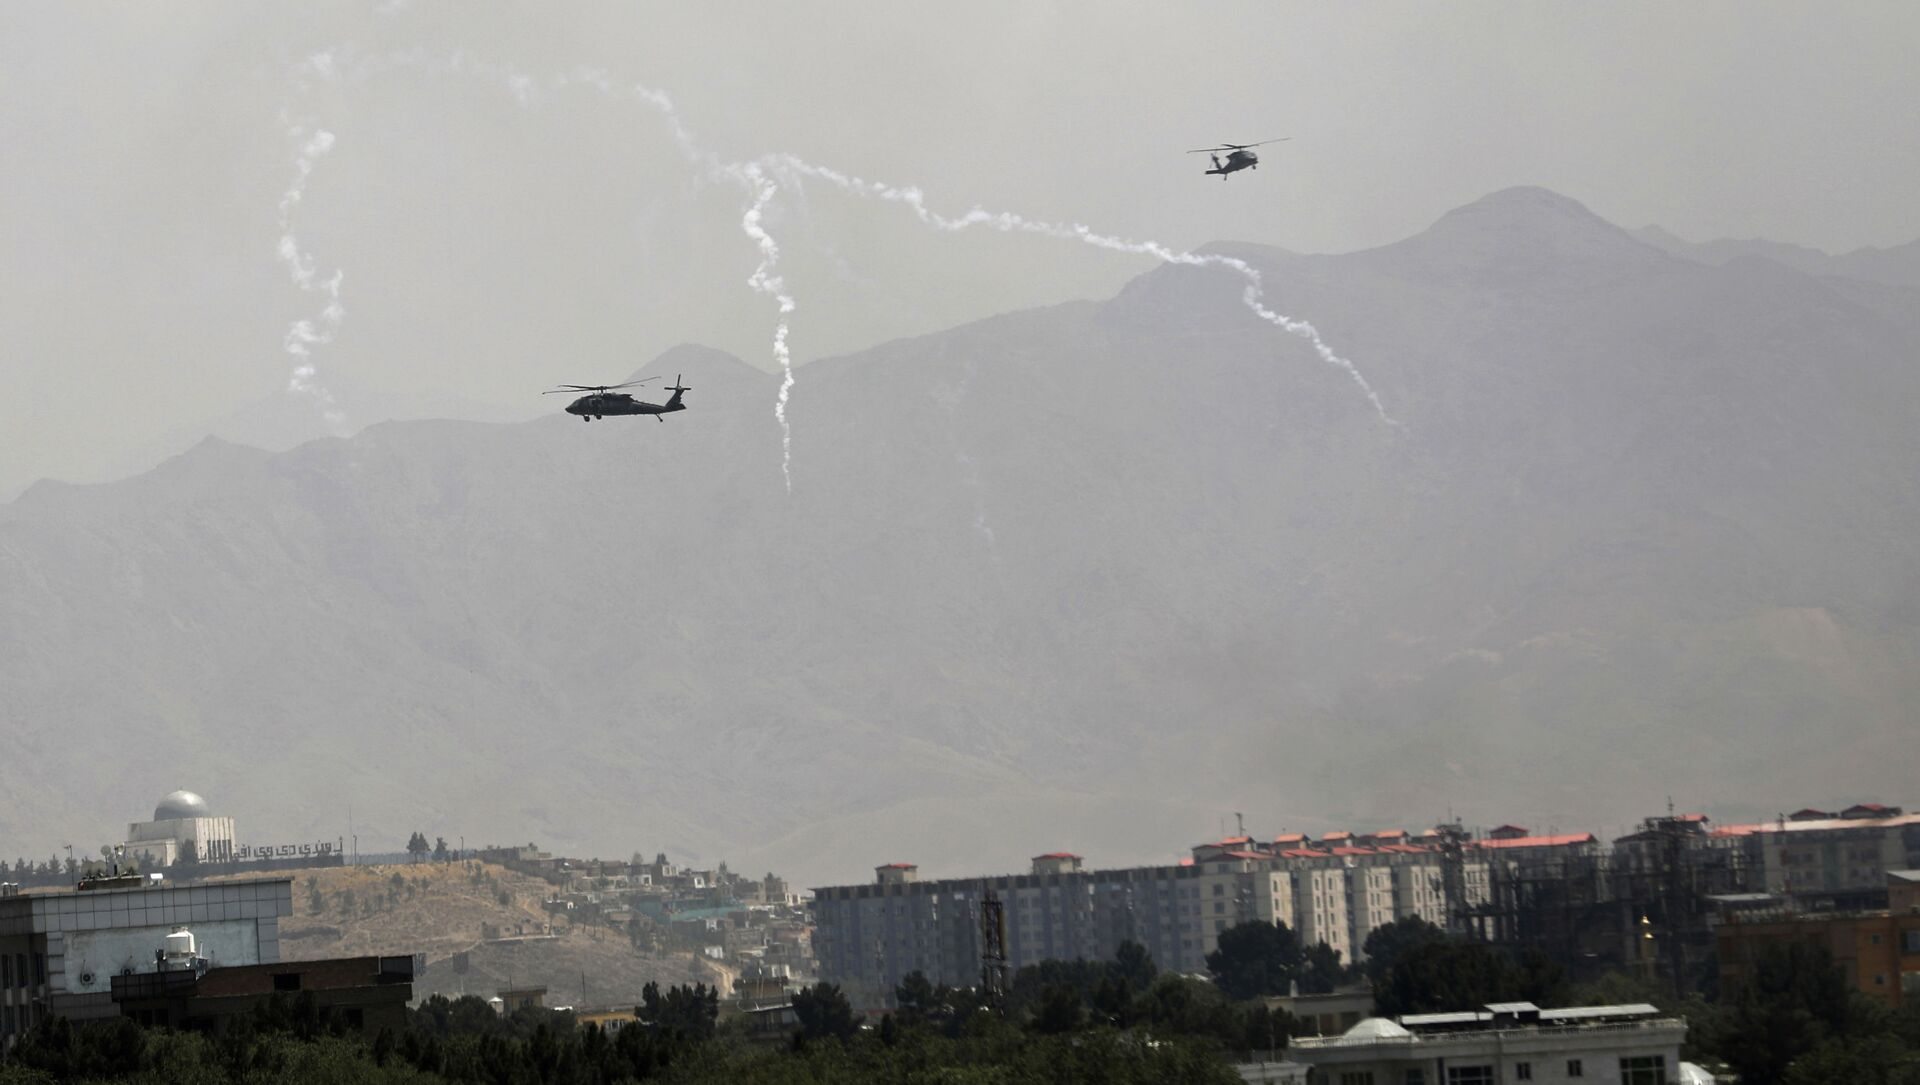 Anti-missile decoy flares are deployed as U.S. Black Hawk military helicopters and a dirigible balloon fly over the city of Kabul, Afghanistan, Sunday, Aug. 15, 2021. - Sputnik International, 1920, 22.08.2021